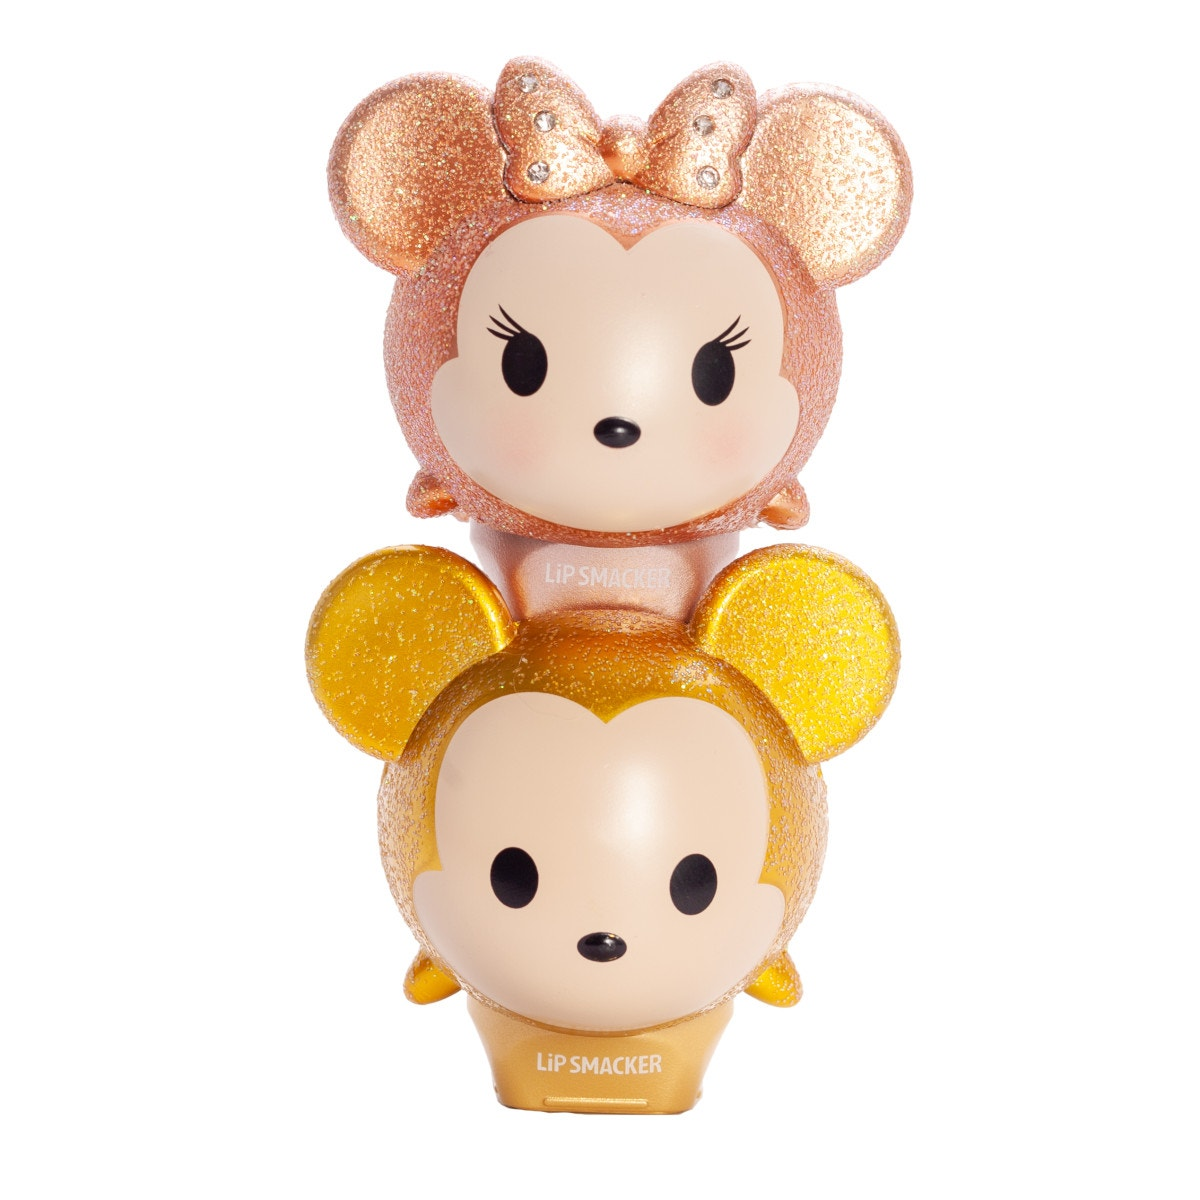 Physicians Formula | Tsum Tsum Duo - Glitter Gold Mickey & Minnie - Product front facing stalked with no background